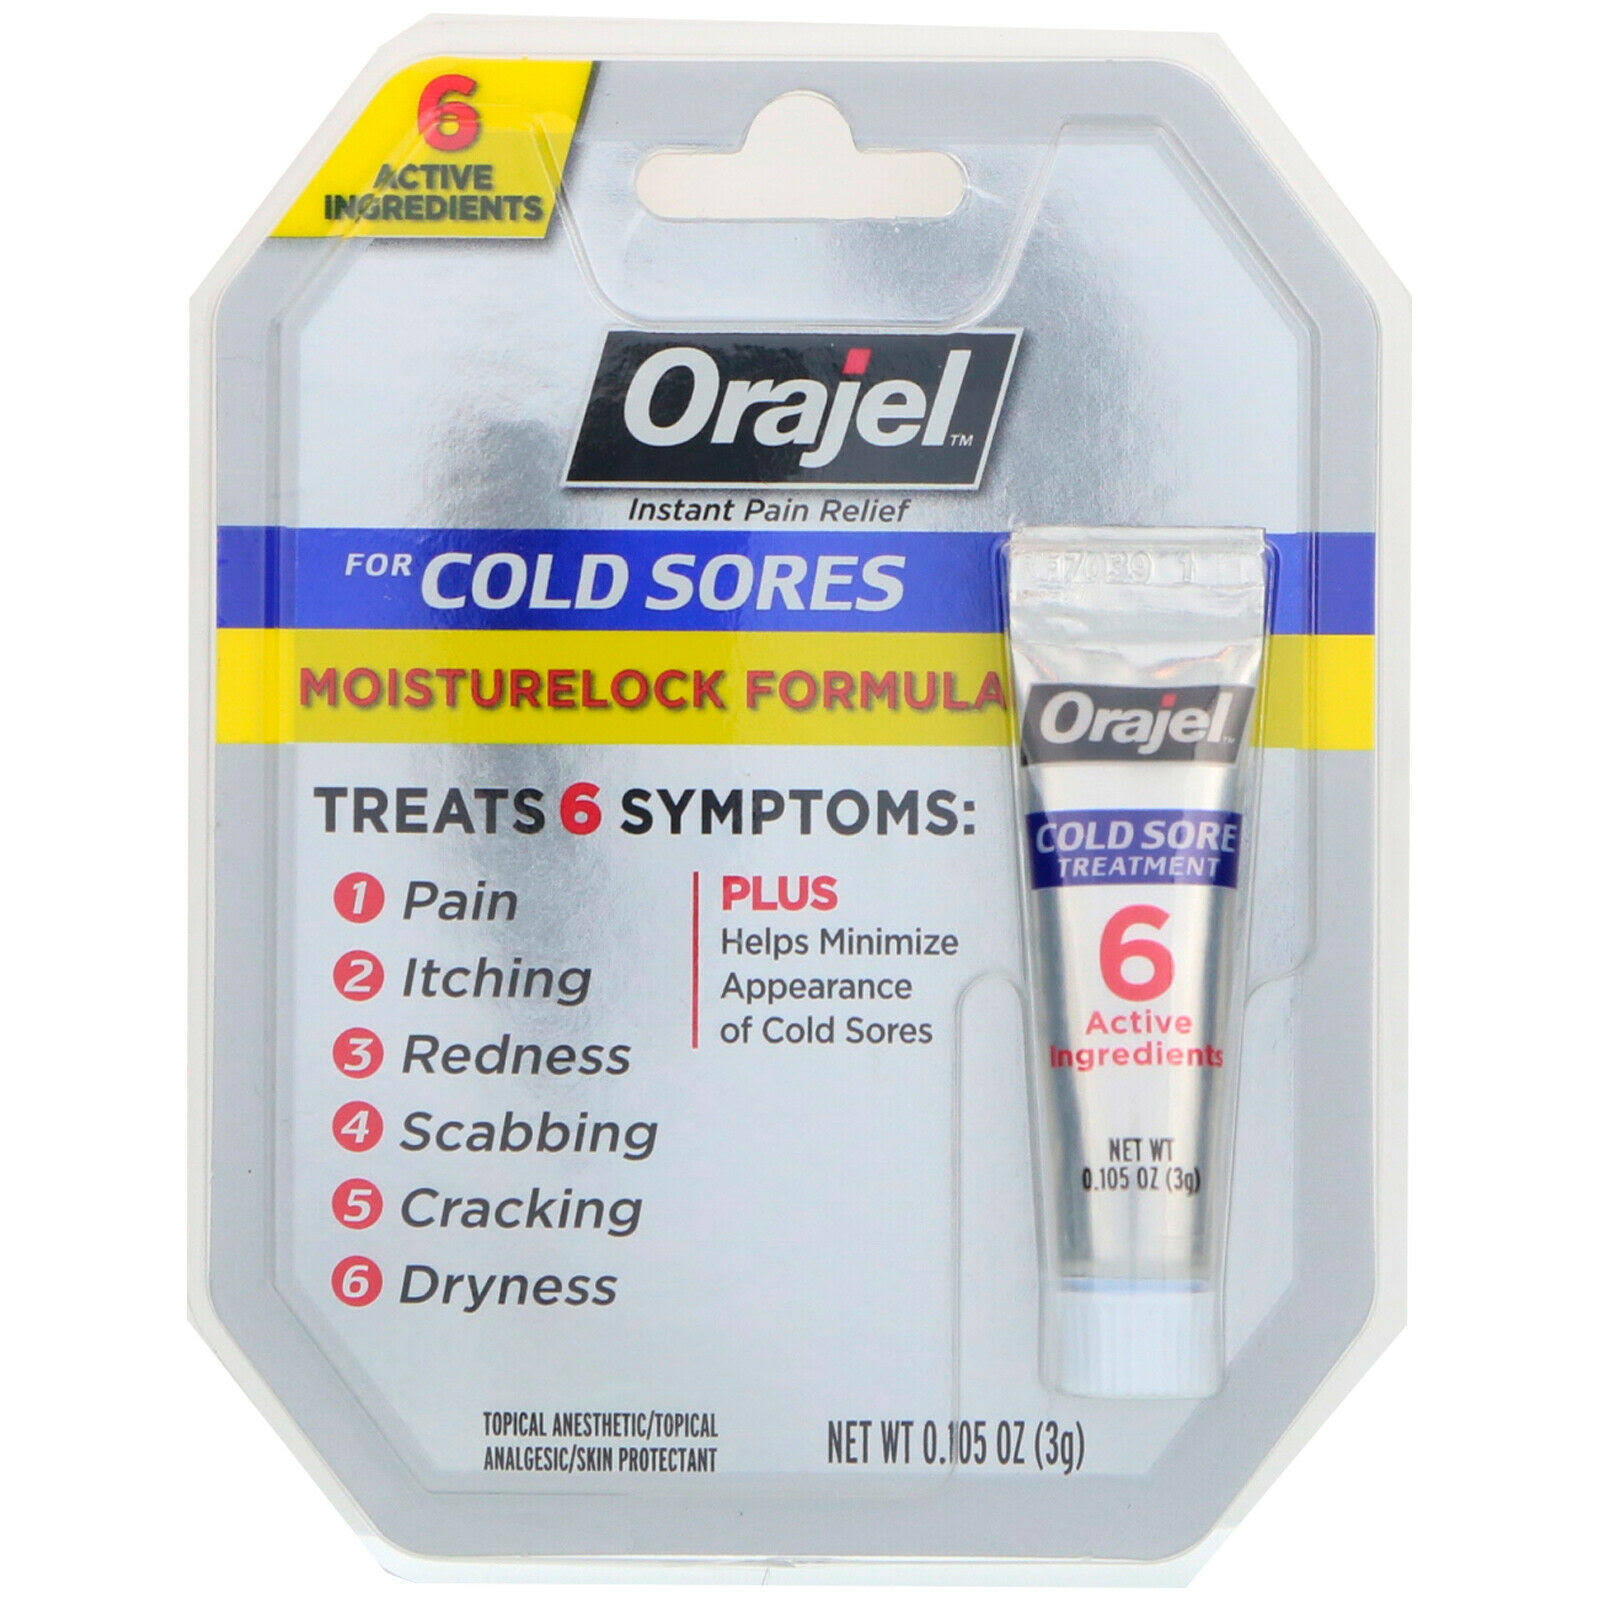 Orajel Moisturelock Cold Sore Treatment - Cream, 3g